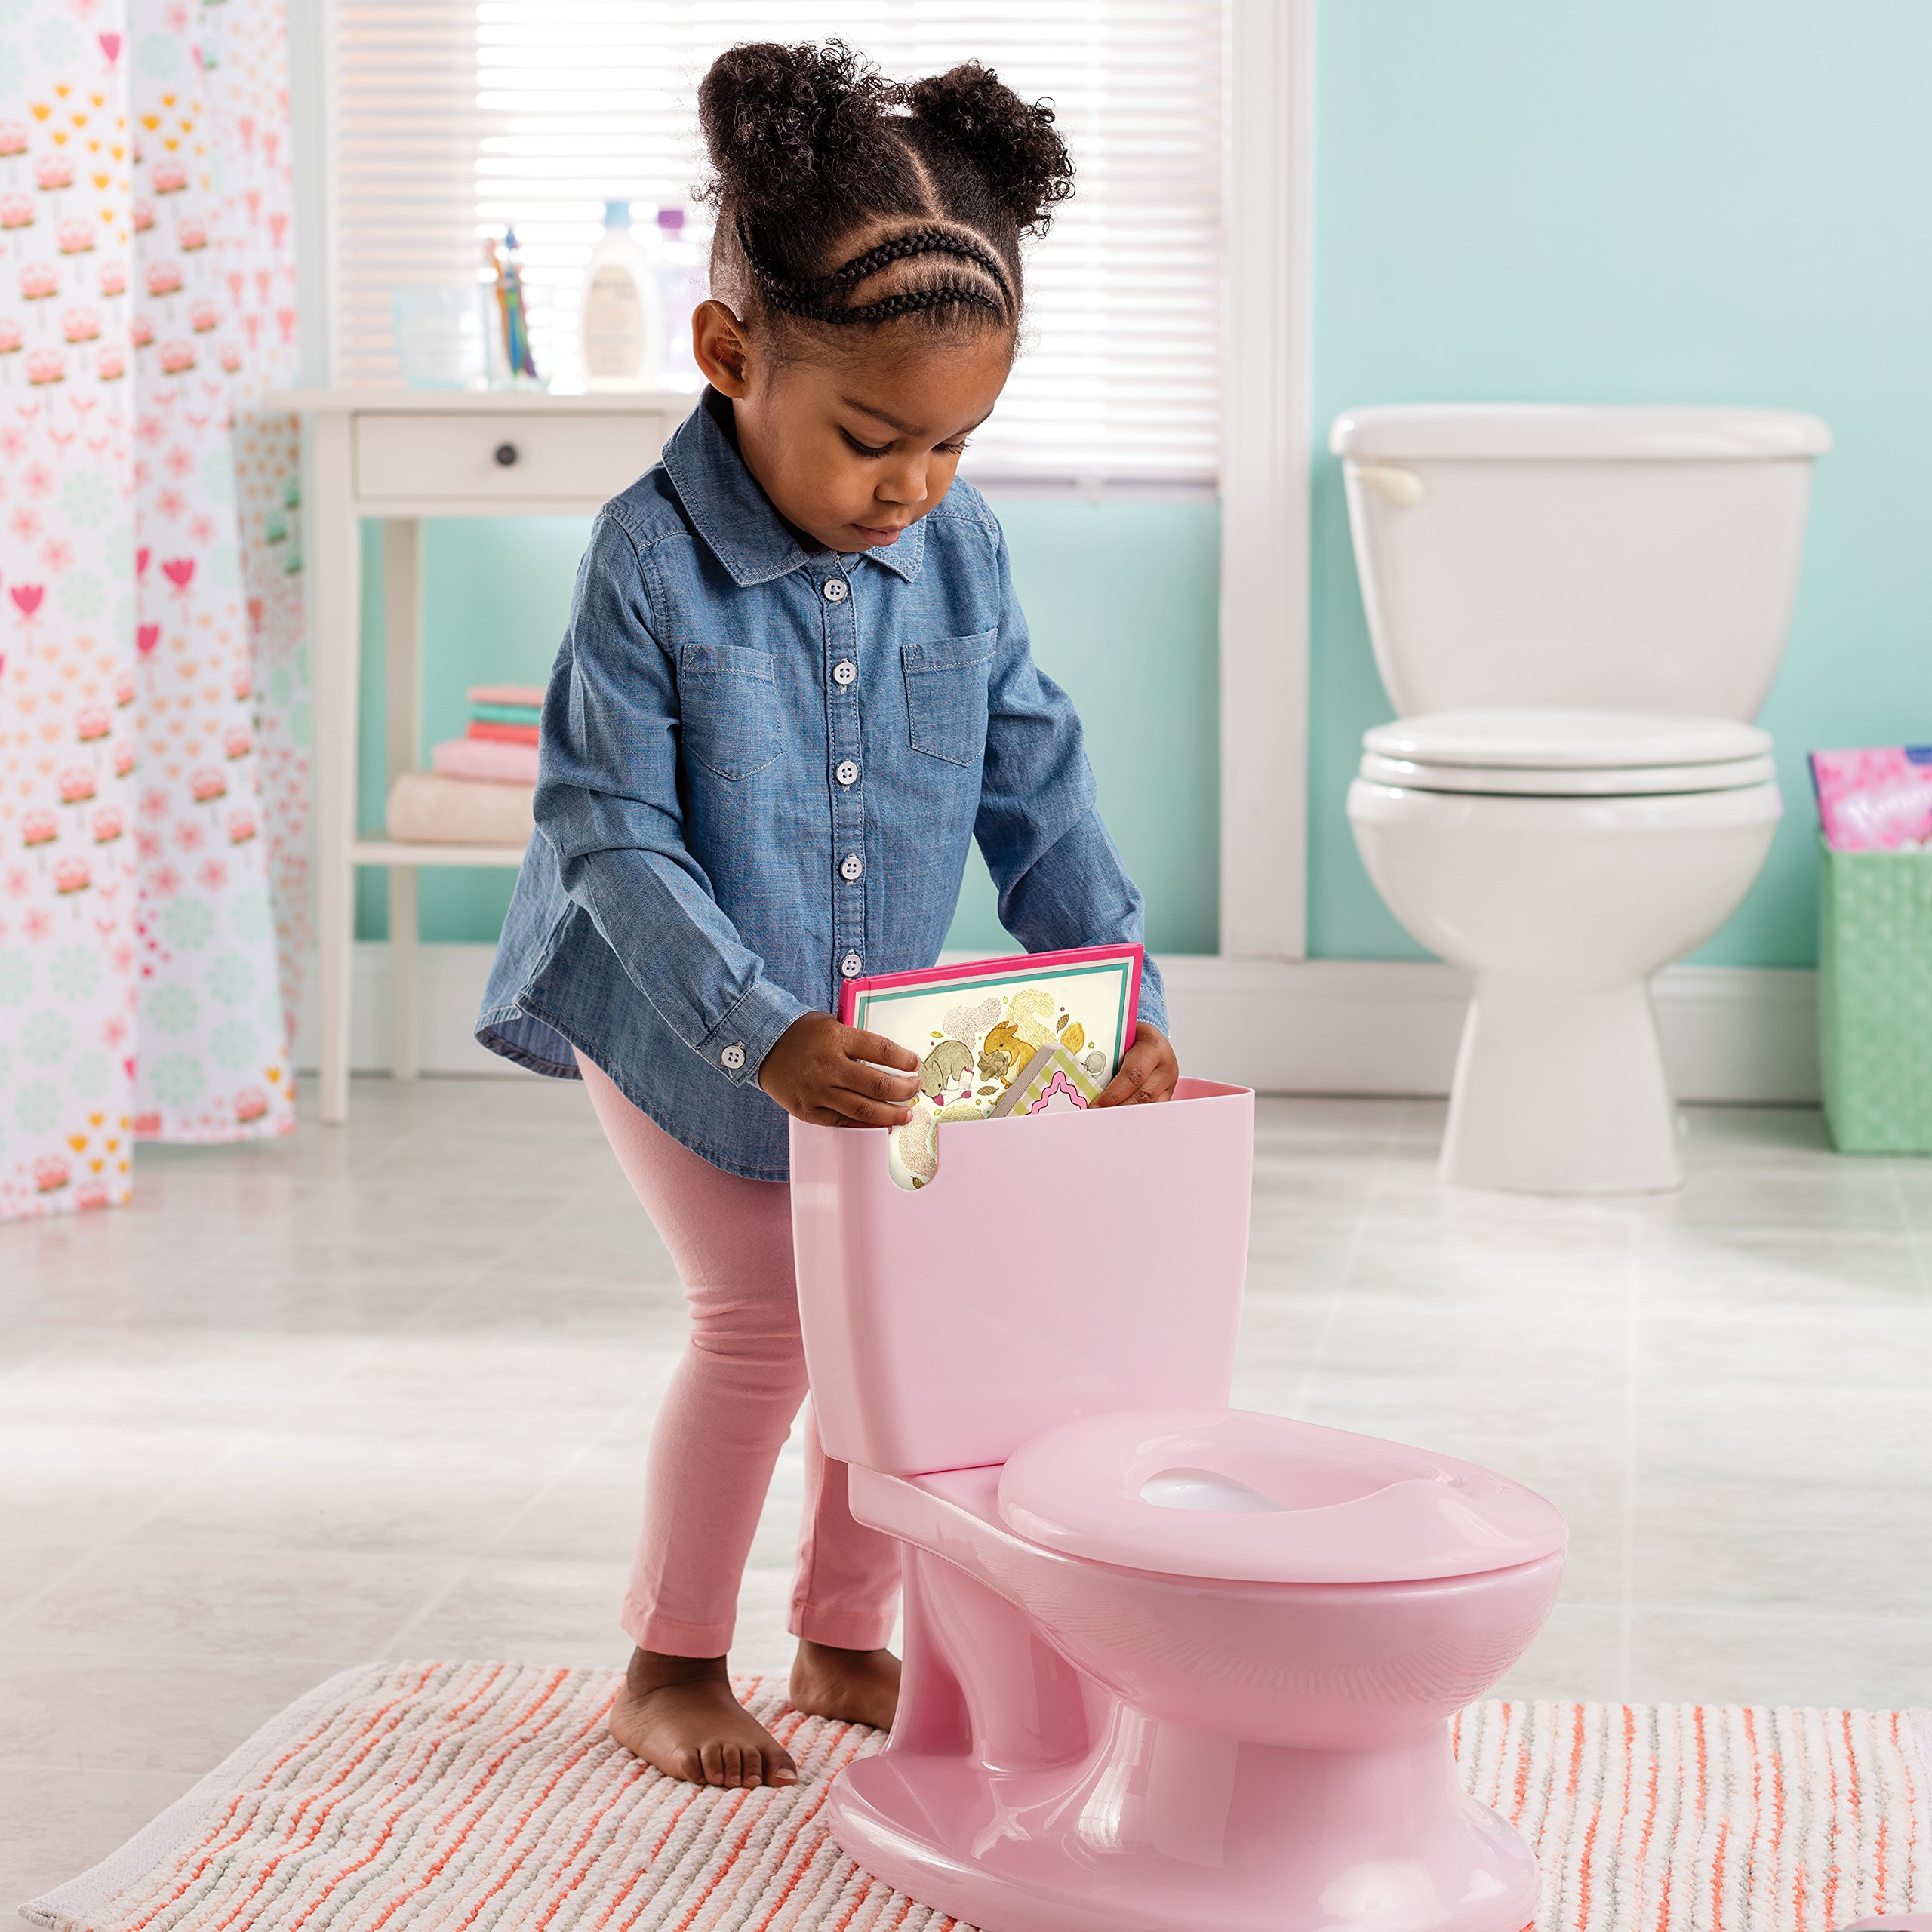 8bb775fcfc0 Summer Infant My Size Potty (Pink) - Training Toilet for Toddler ...